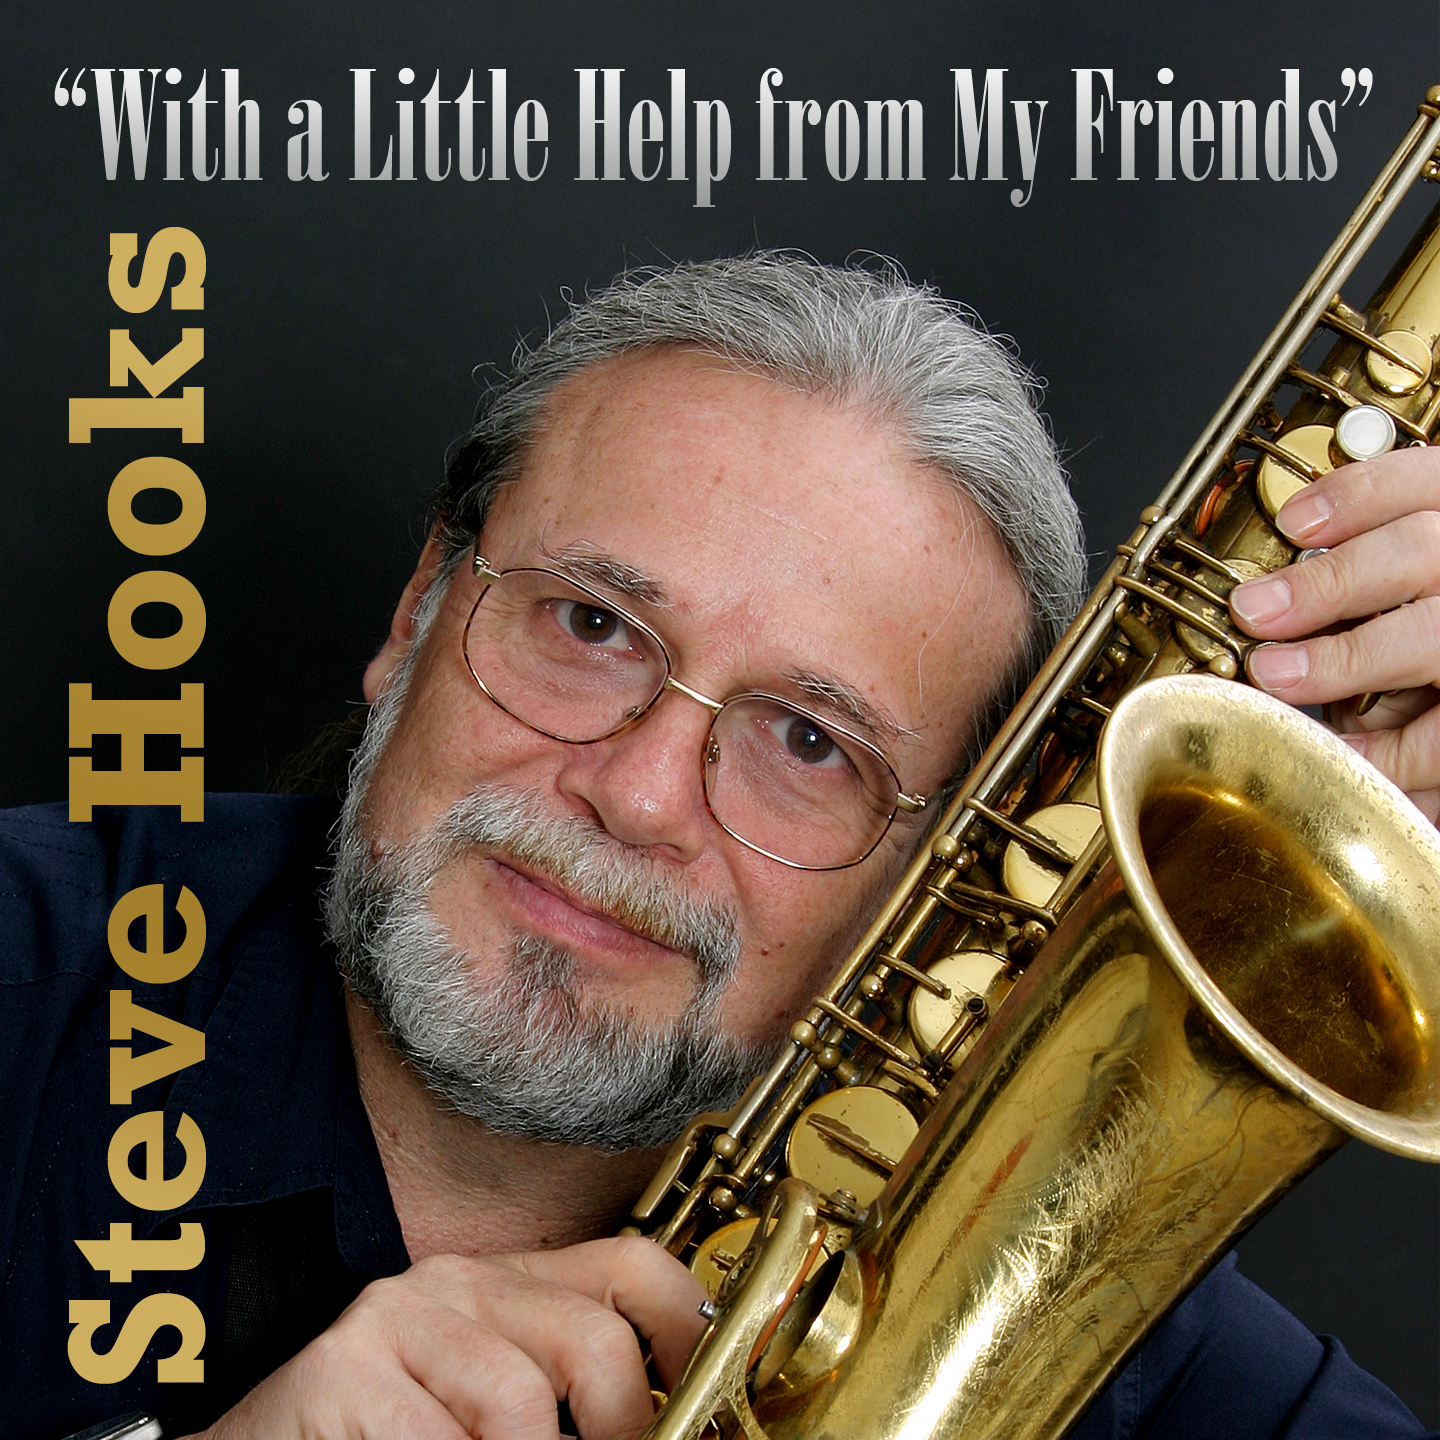 Steve Hooks - With a little help from my friends